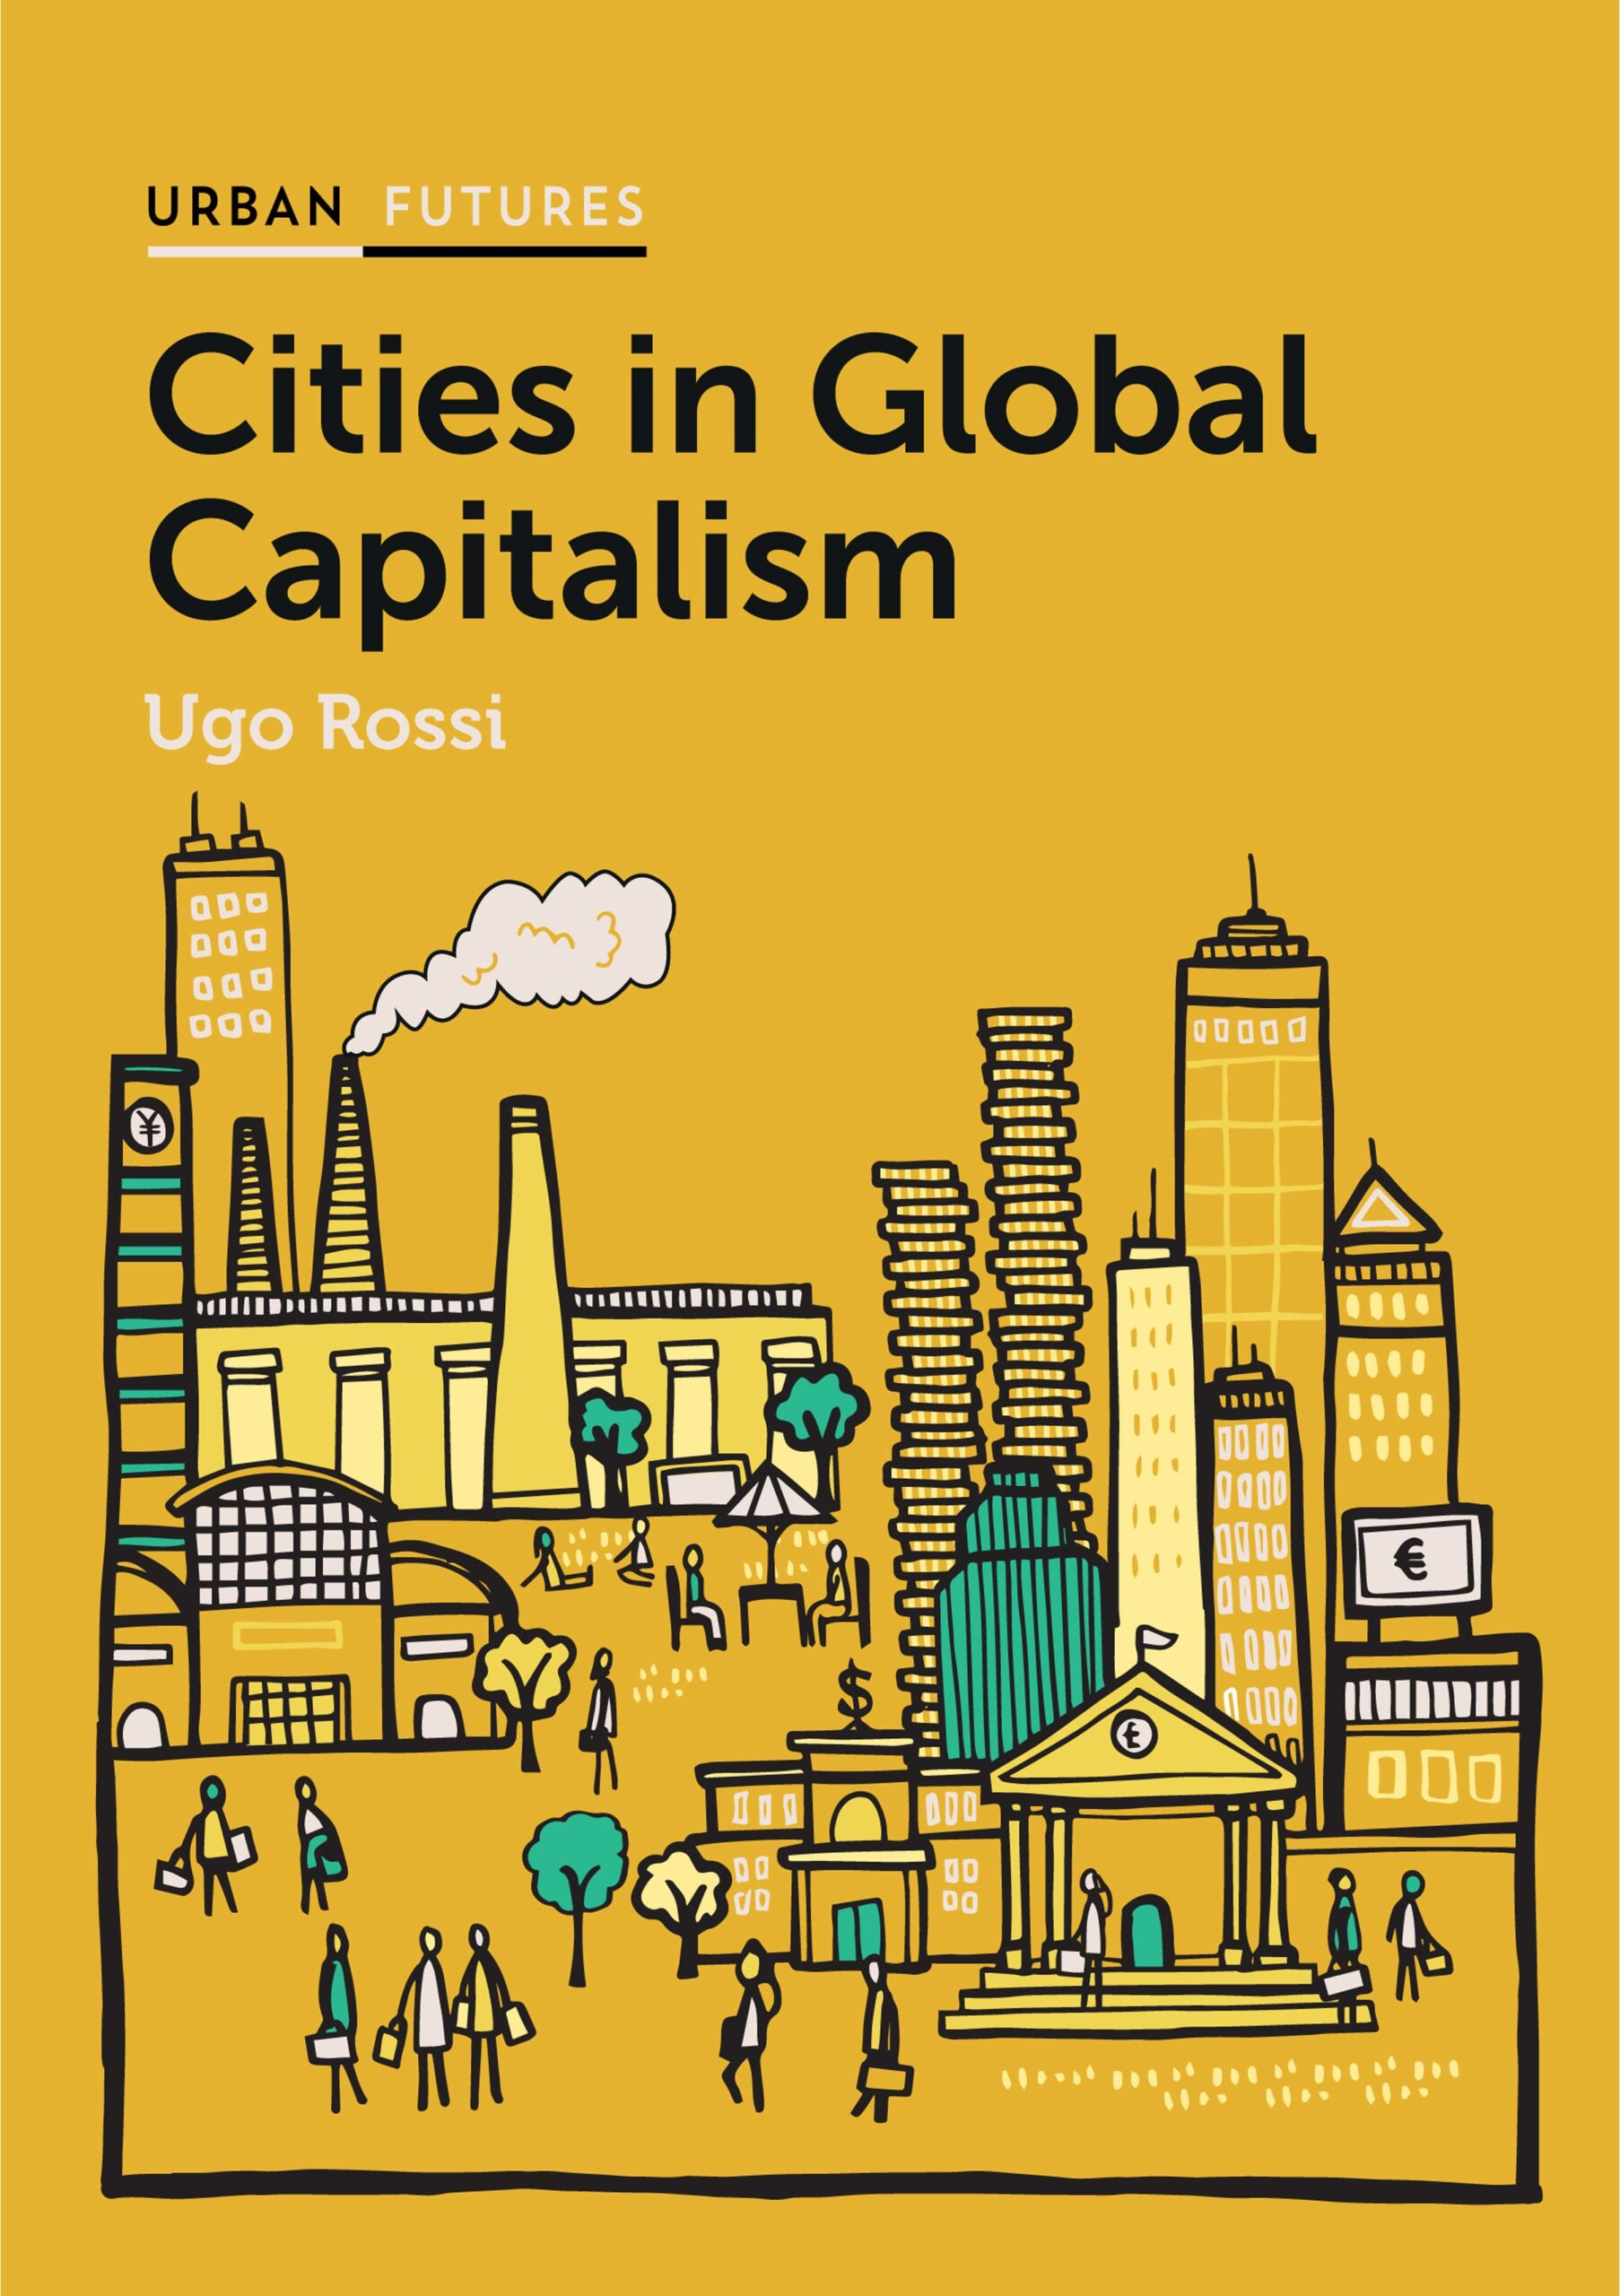 Cities in Global Capitalism